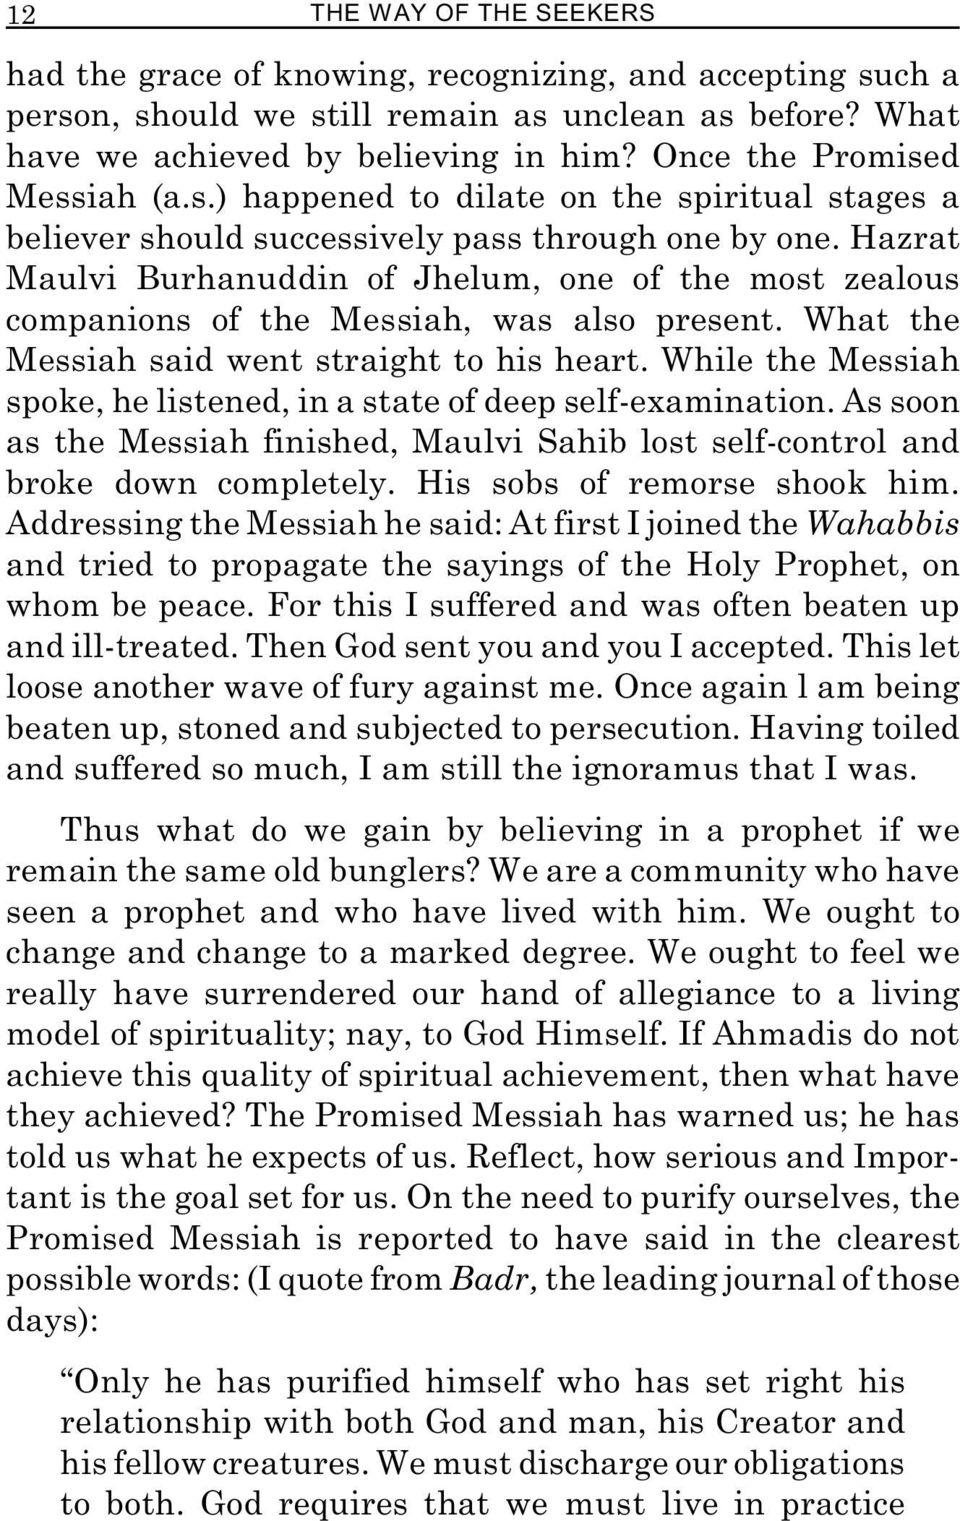 Hazrat Maulvi Burhanuddin of Jhelum, one of the most zealous companions of the Messiah, was also present. What the Messiah said went straight to his heart.